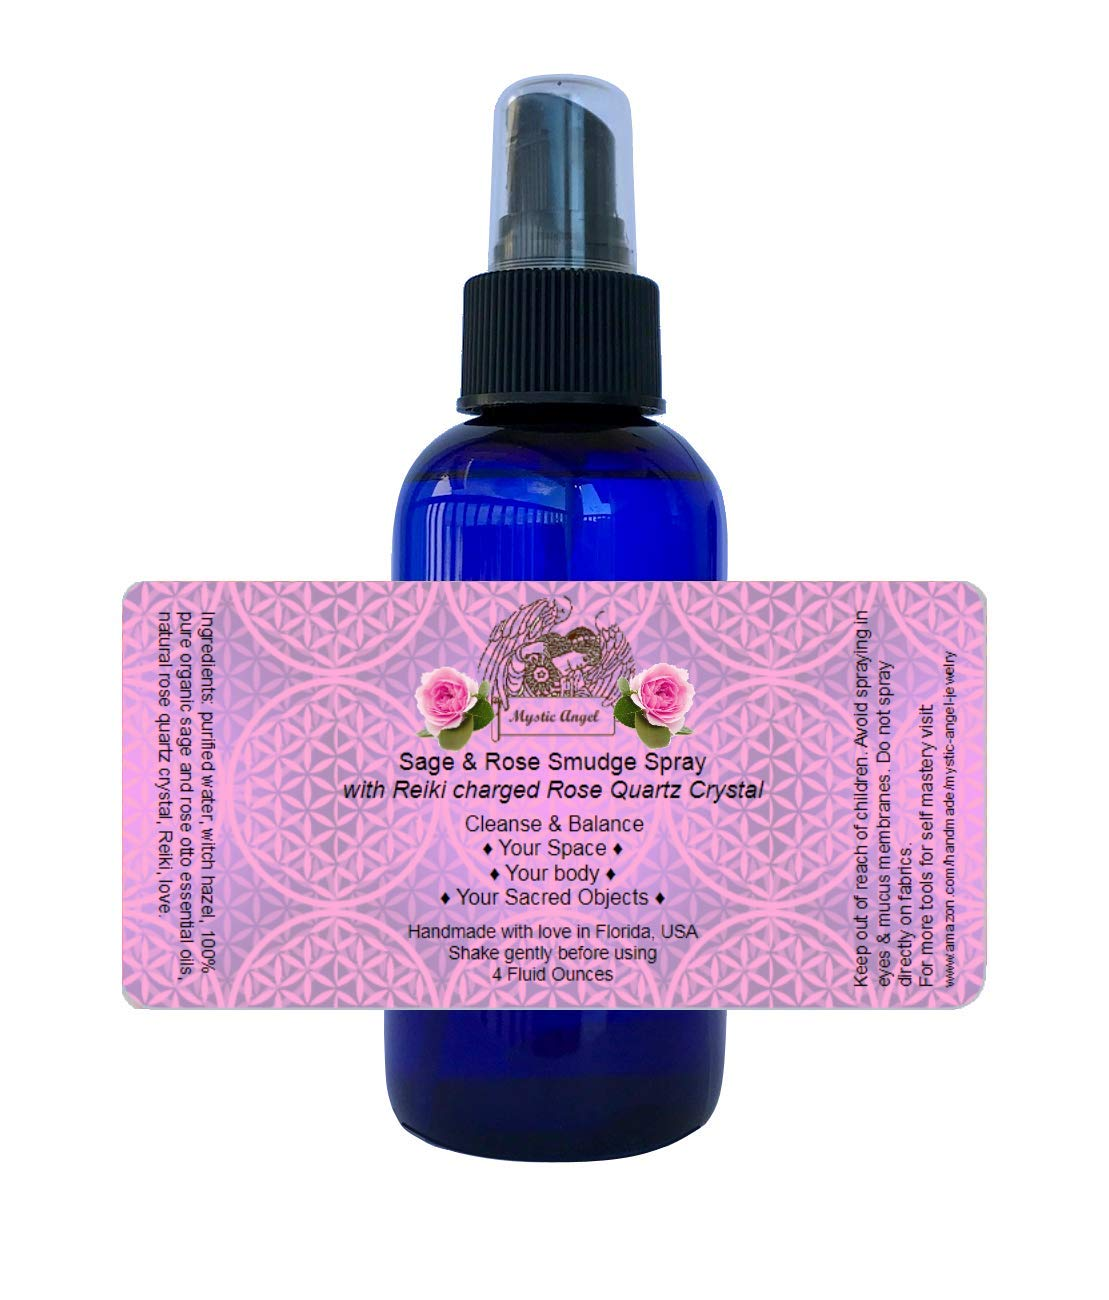 White Sage & Rose Smudge Spray (4 oz.) with Reiki Charged Rose Quartz Crystal & Archangel Chamuel Essence, 4 Oz by Mystic Angel (Image #3)